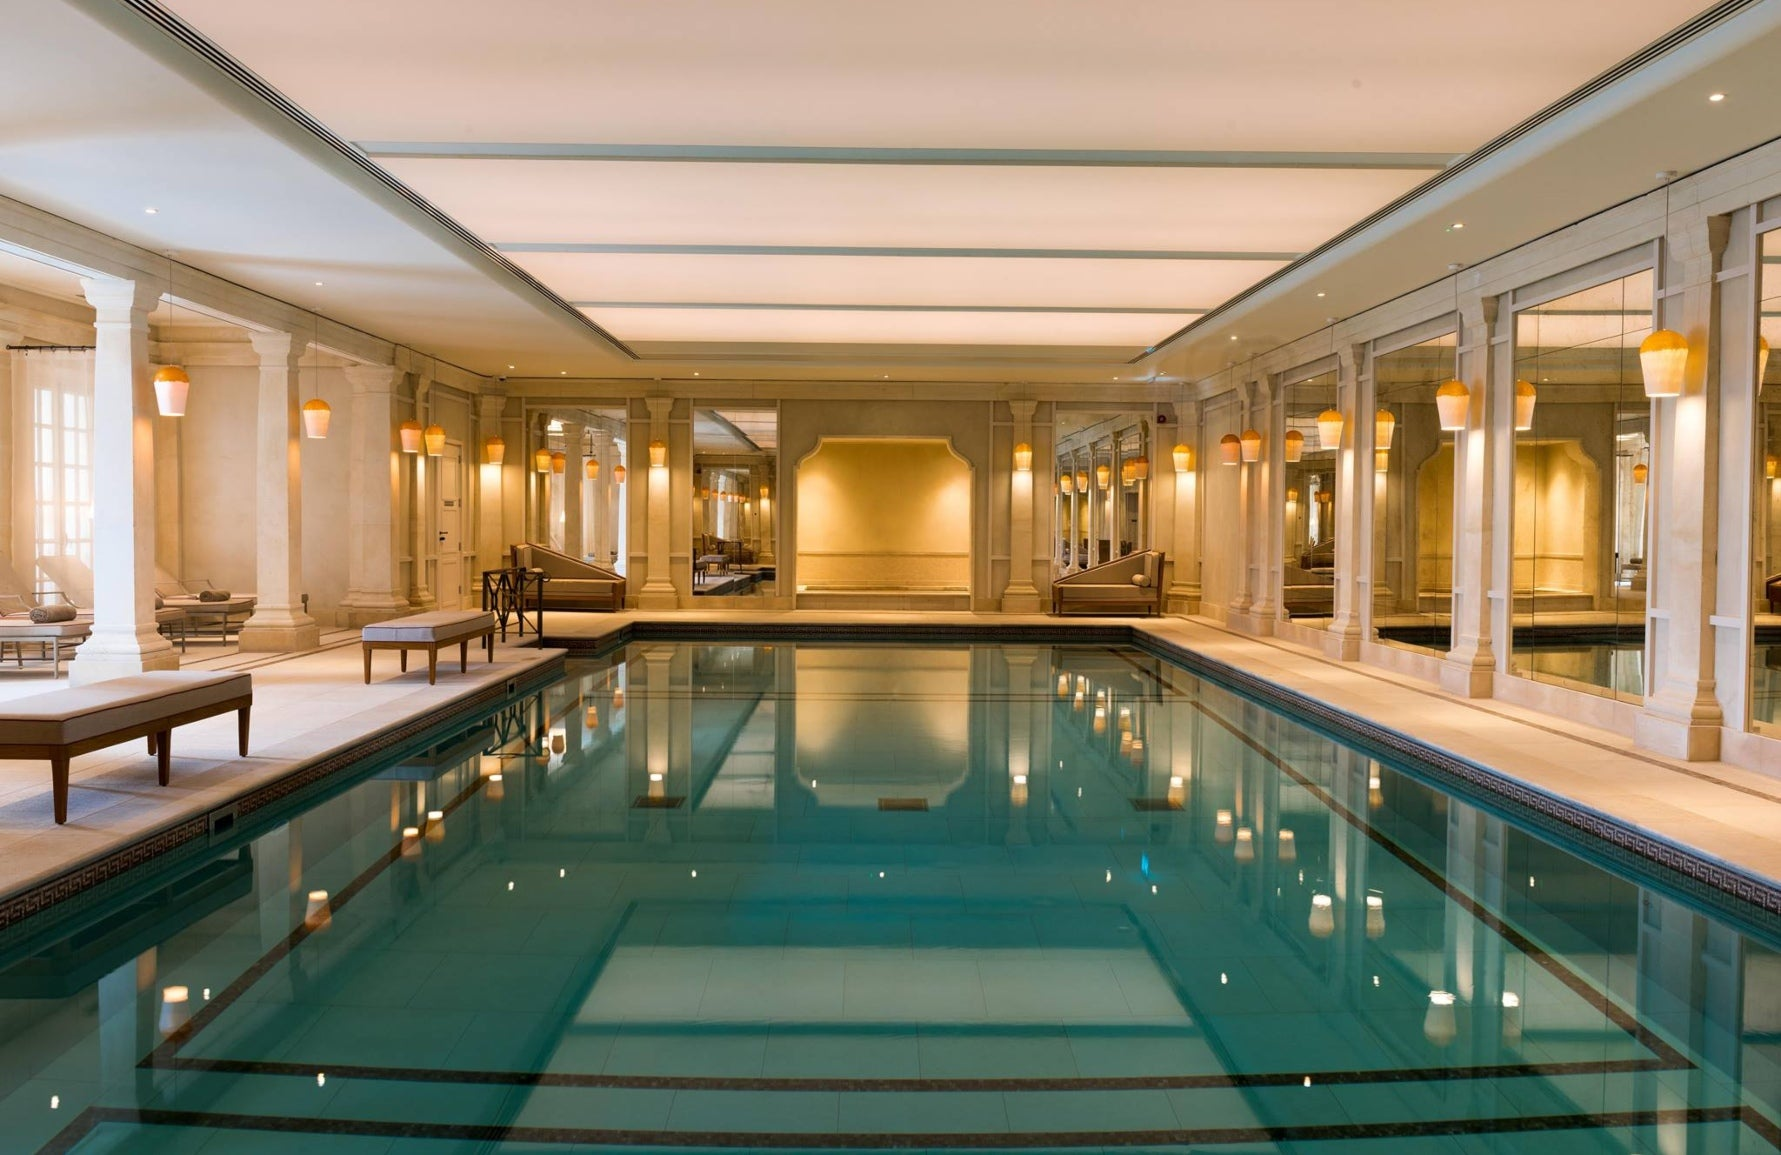 Cliveden House Spa | Read more about Britain's top spa hotels at LuxDeco.com